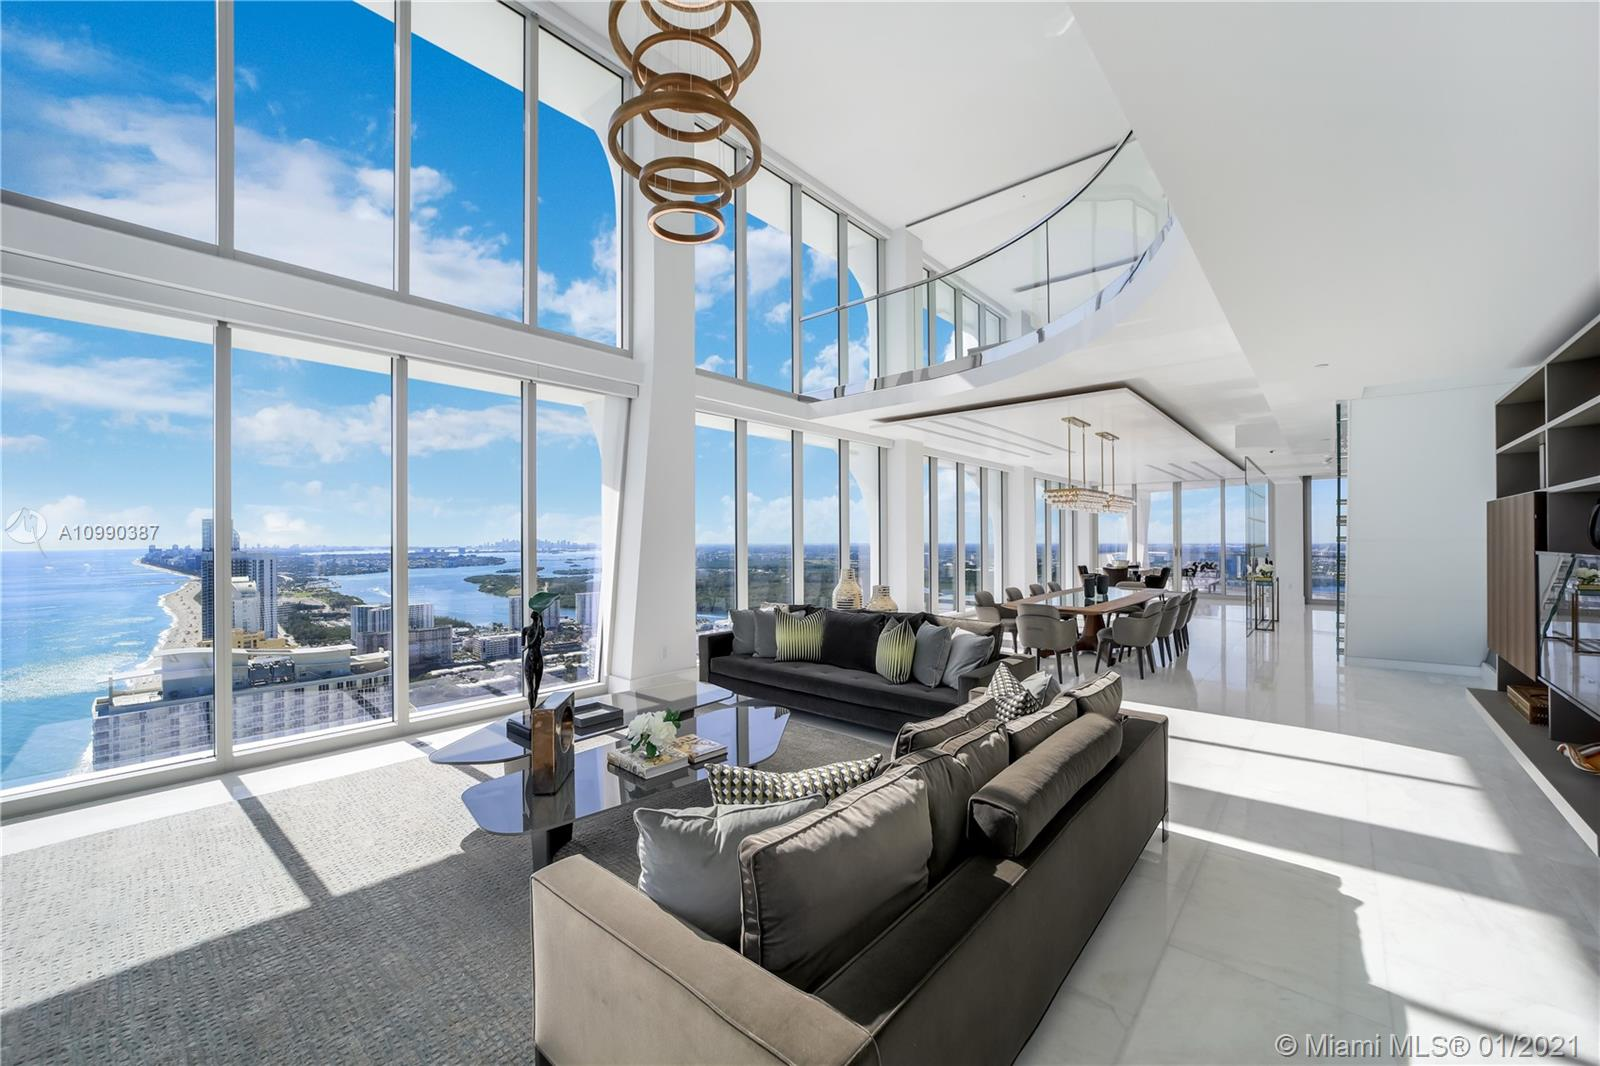 State-of-the-art living meets pristine oceanfront coastal views in this Jade Signature residence, part of the ultra-luxury condo tower created by Pritzker prize-winning Swiss architects, Herzog & De Meuron, and interior architecture by PYR led by Pierre-Yves Rochon. The premier 2-story SE corner Upper Sky Villa is a seamless indoor/outdoor living experience. Unparalleled 180-degree water views are witnessed from 6,735 SF of living space & 1,161 SF of private terraces. Soaring 20-foot ceilings, modern and tasteful opulence describes the villa's finishes & decor offering an elevated experience in entertaining. Superior amenities, lush gardens, direct beach access, make this magnificent Sunny Isles Beach property, in the heart of our American Riviera, a rare find. Welcome to Miami!